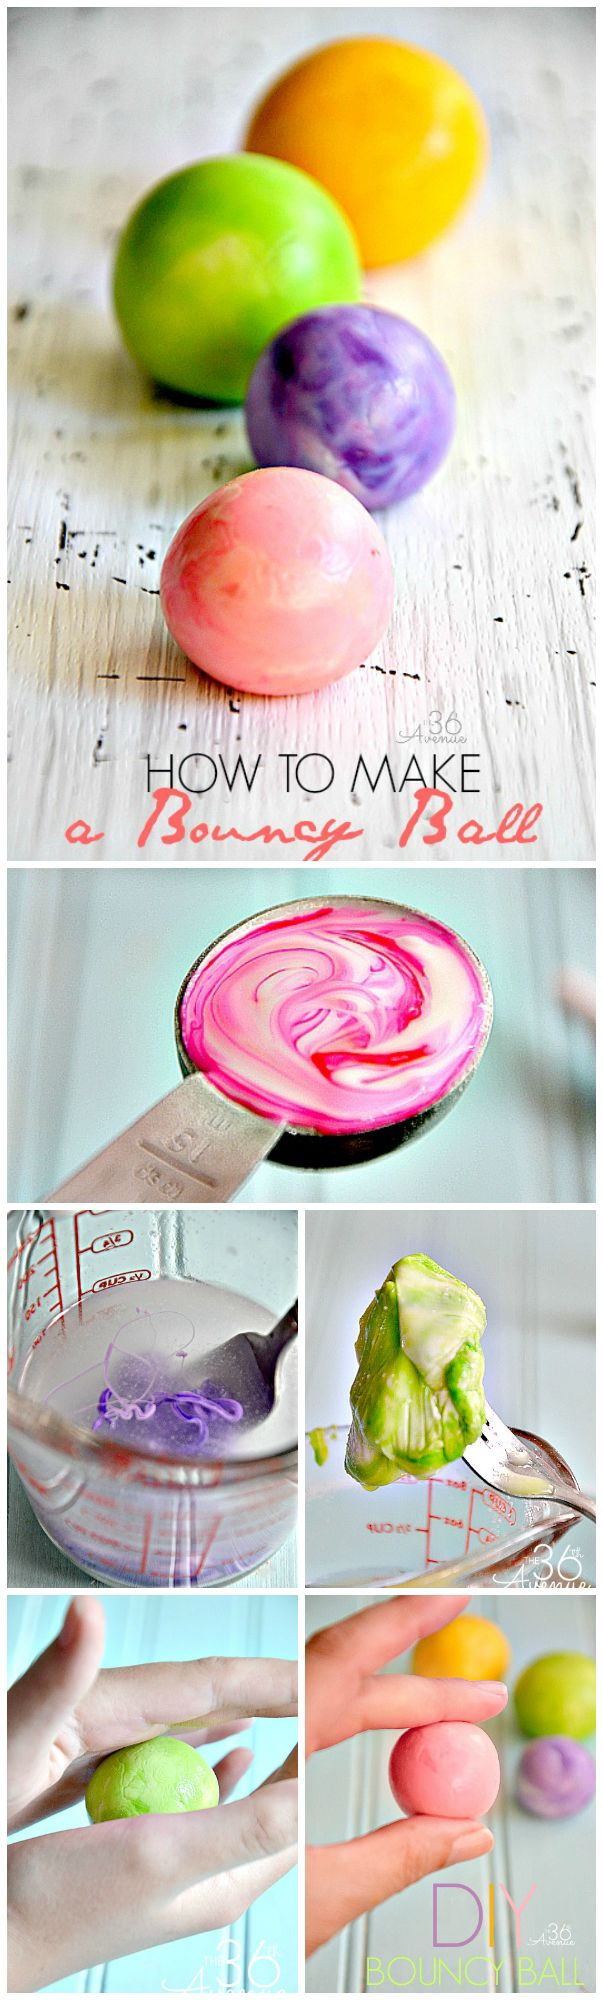 How to make a Bouncy Ball... Kids LOVE making and playing with these